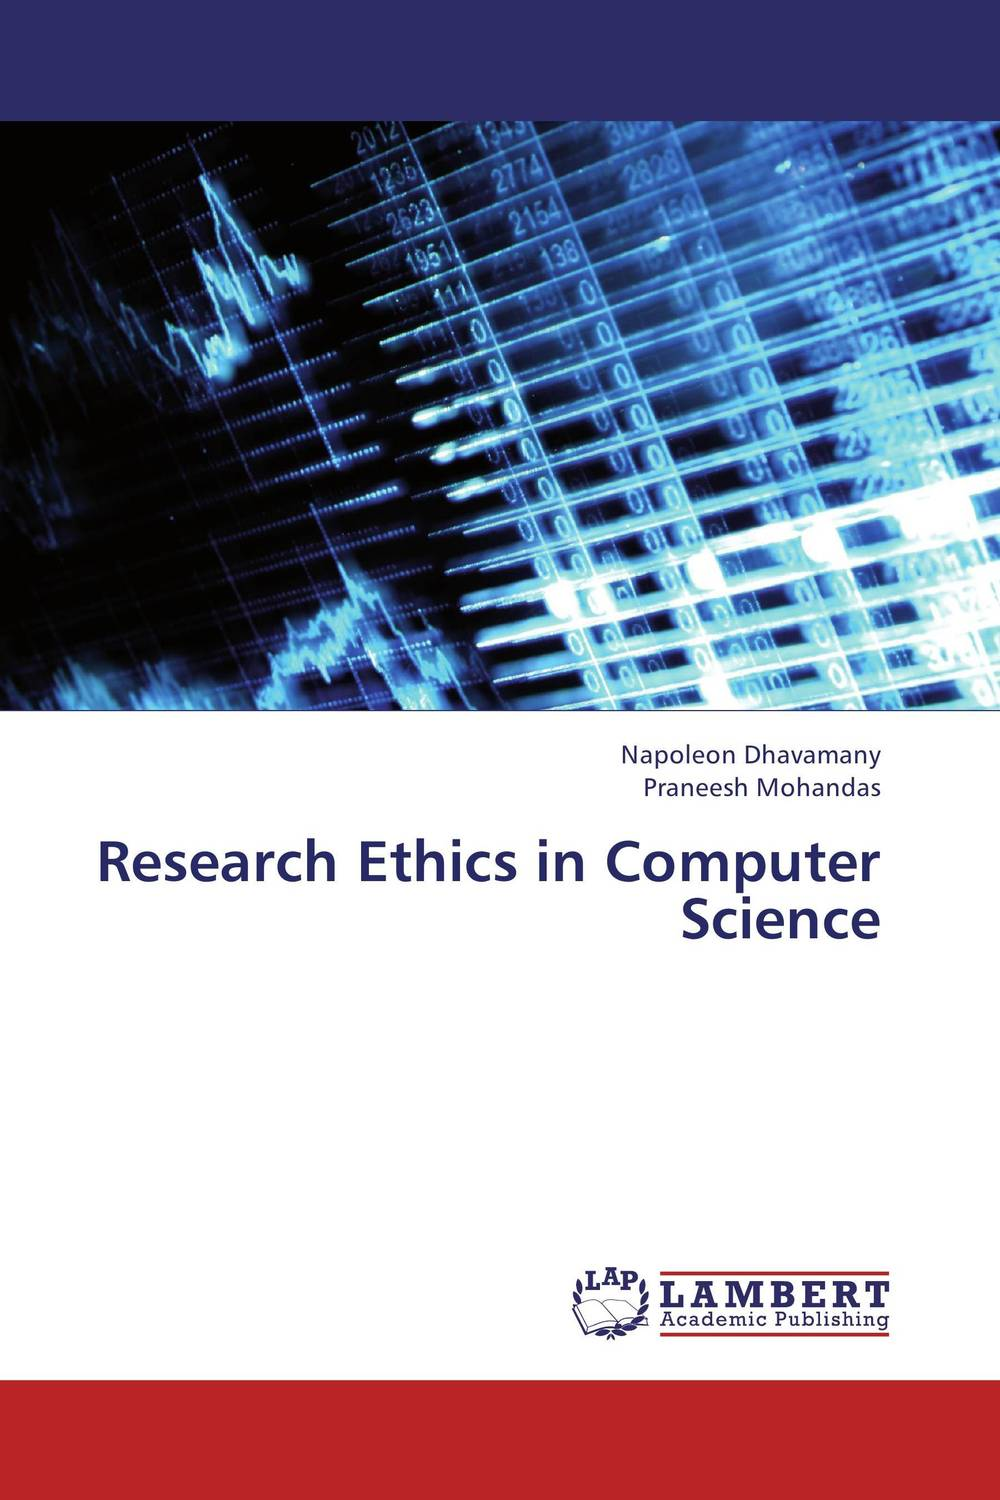 Research Ethics in Computer Science